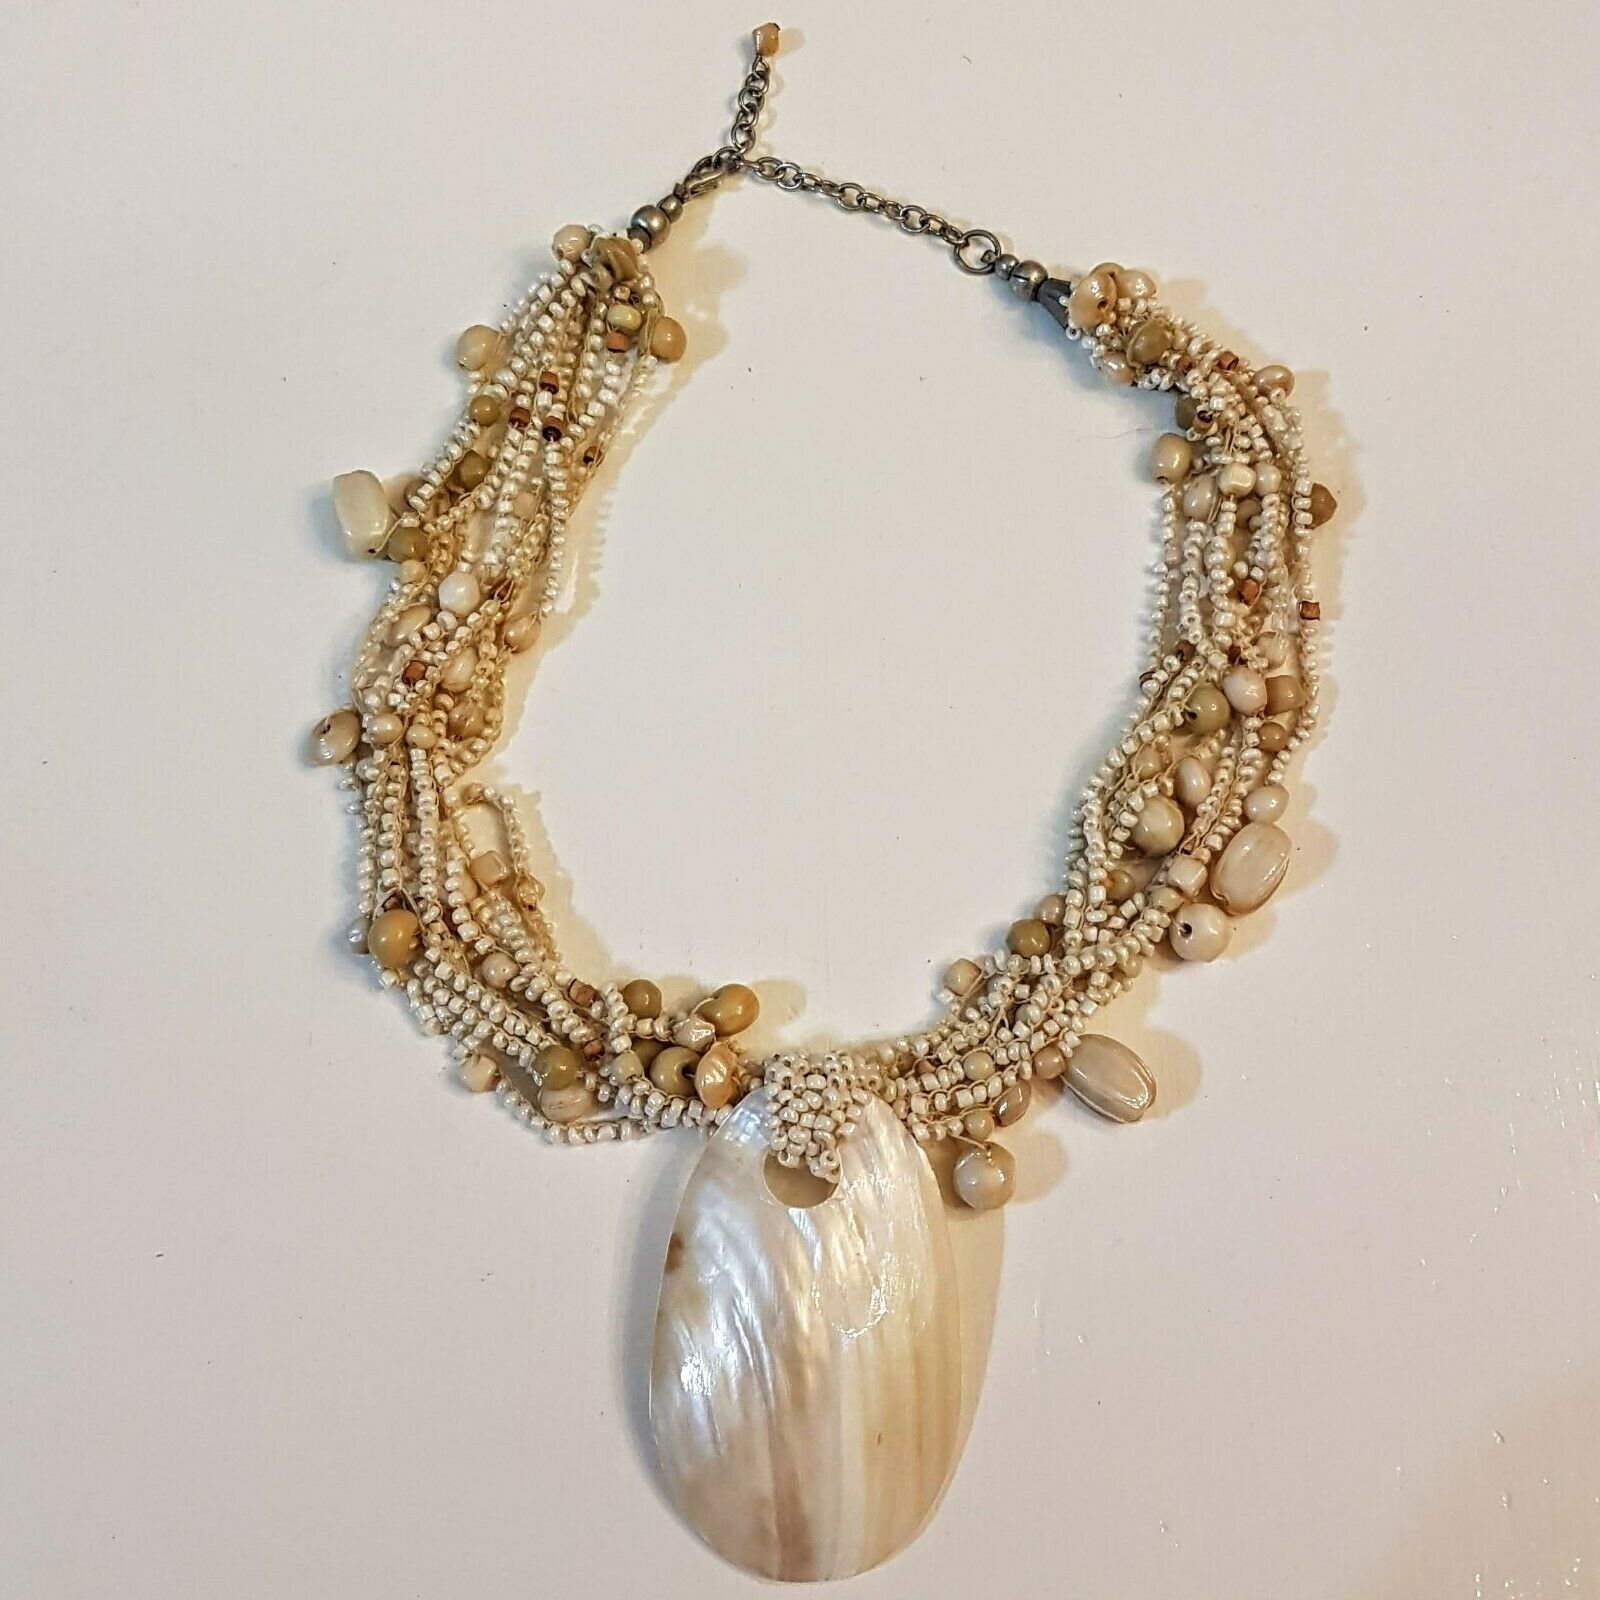 Primary image for Mother of Pearl Shell Pendant NECKLACE Adjustable Beaded Torsade Neutral Shades